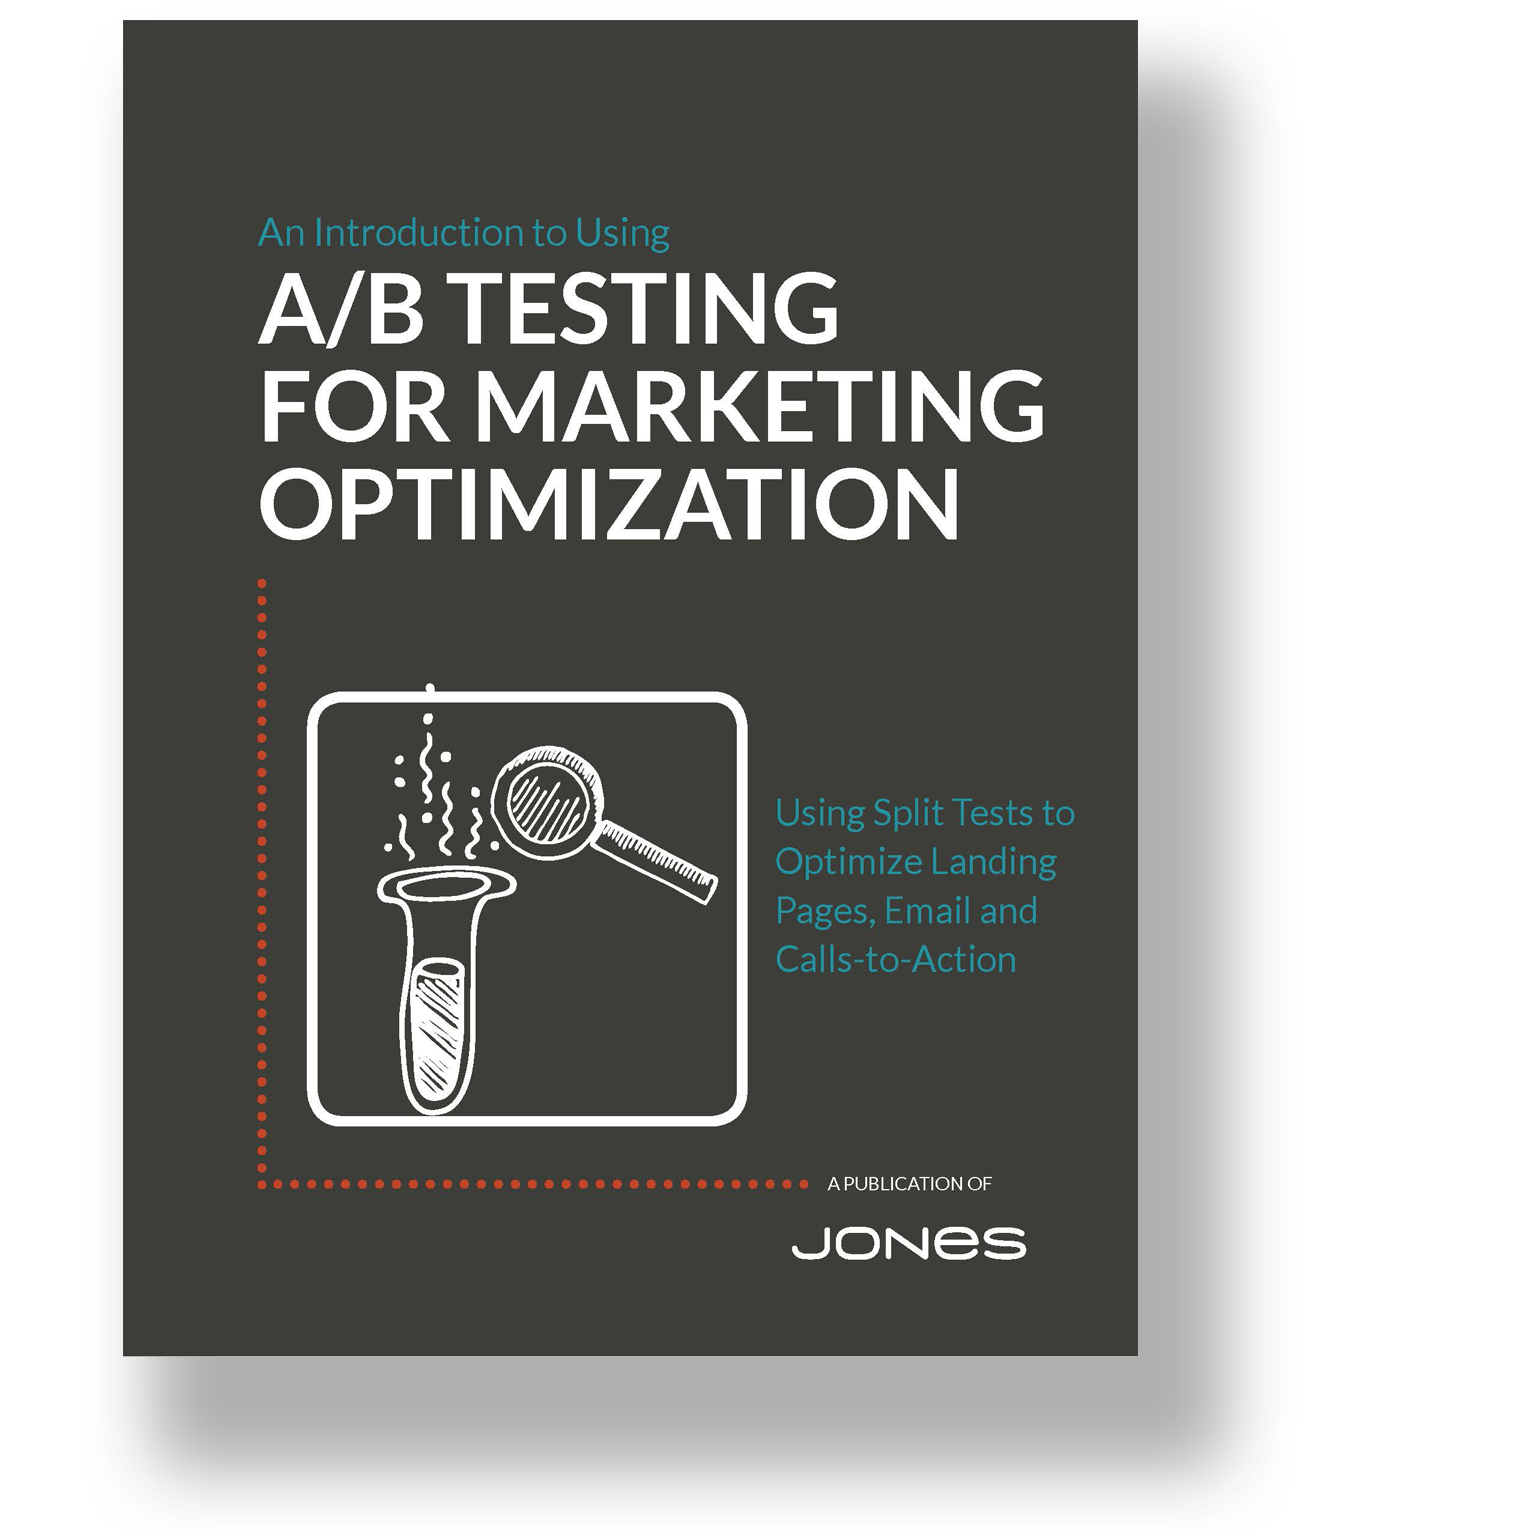 A/B testing for marketing optimization